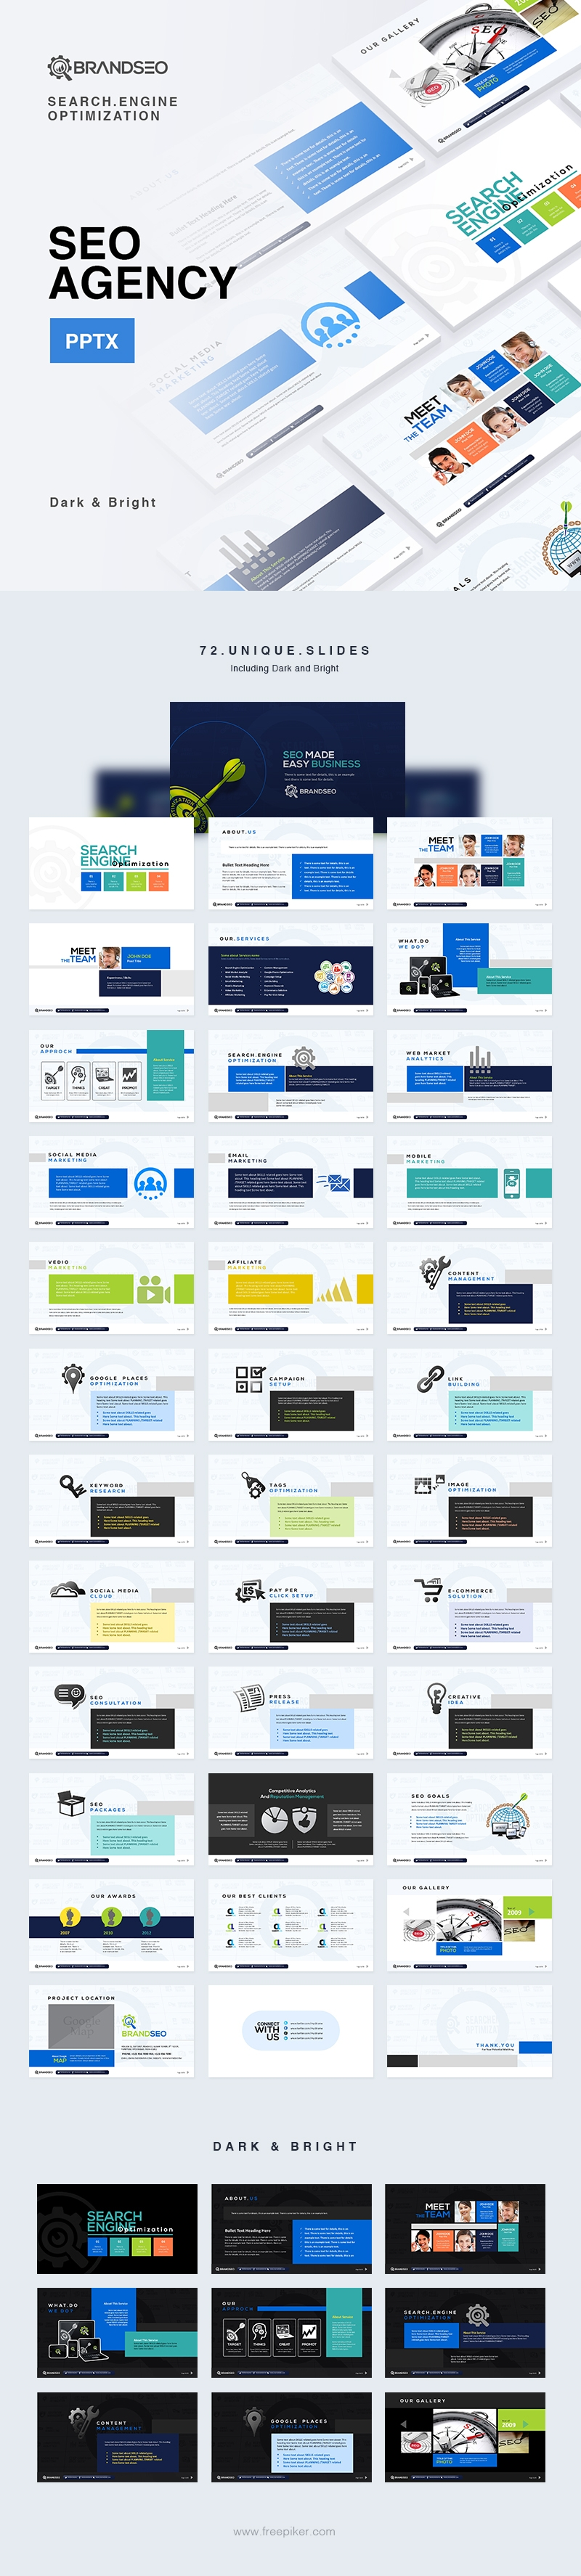 SEO PowerPoint for SEO Services Agency | BrandSEO